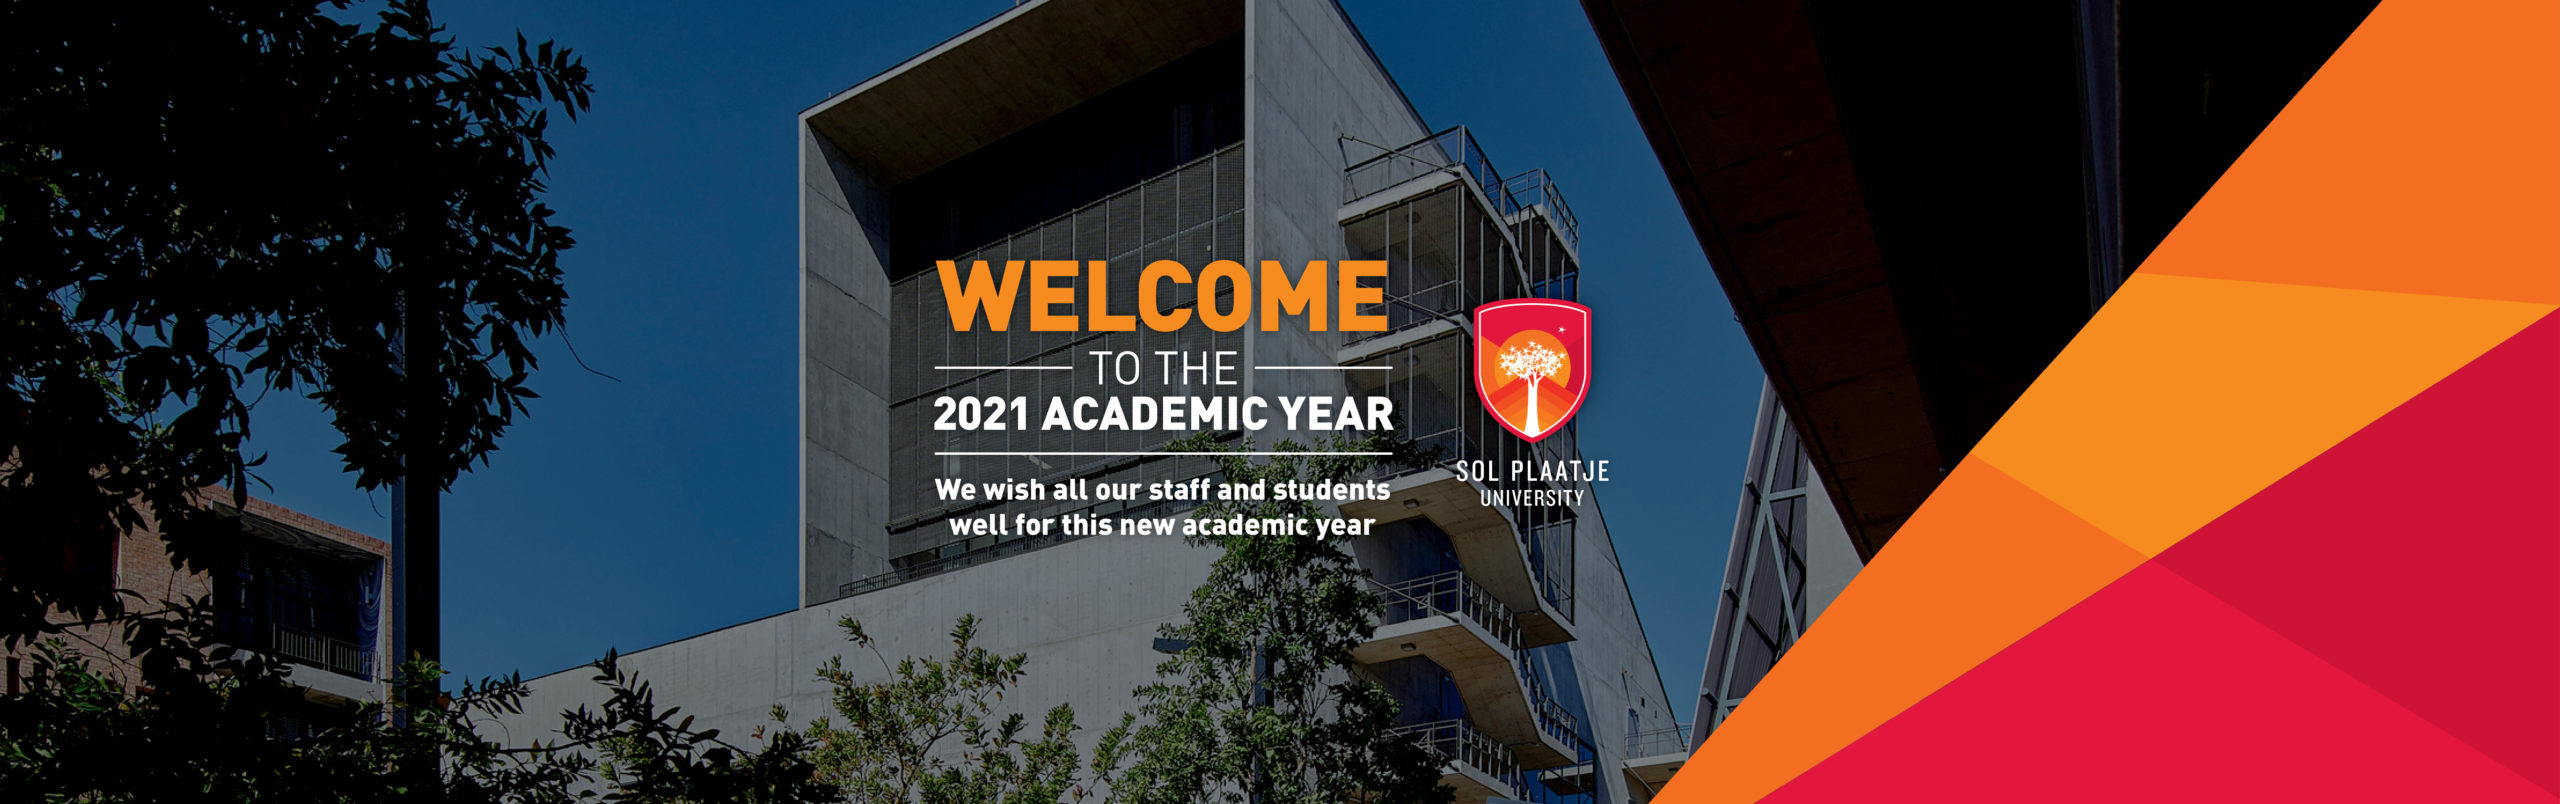 Welcome to the 2021 academic year